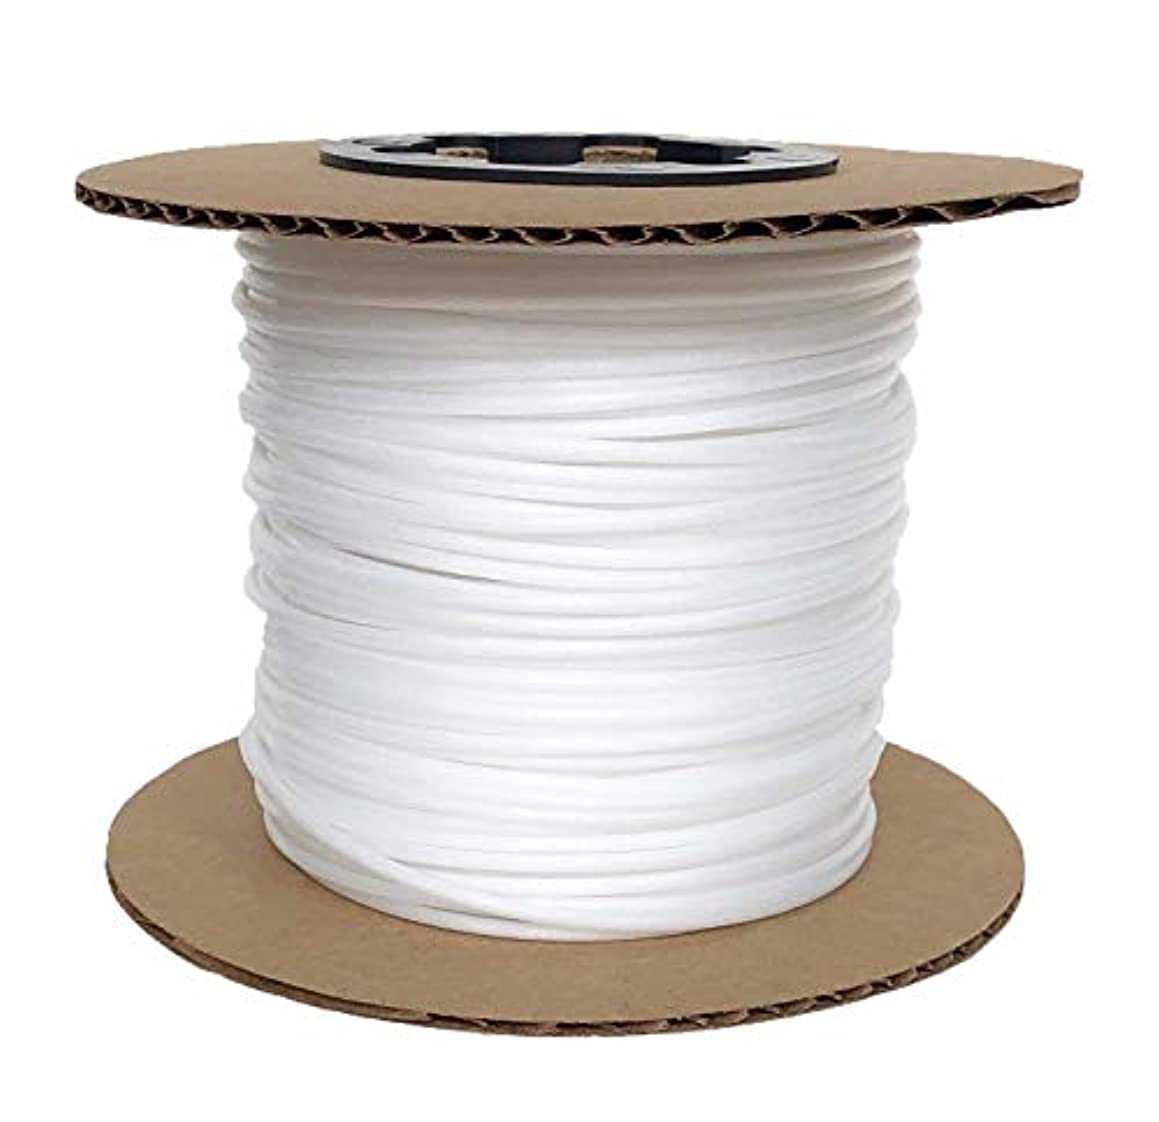 Upholstery Plastic Foam Welt Cord Piping Made in USA (3/32